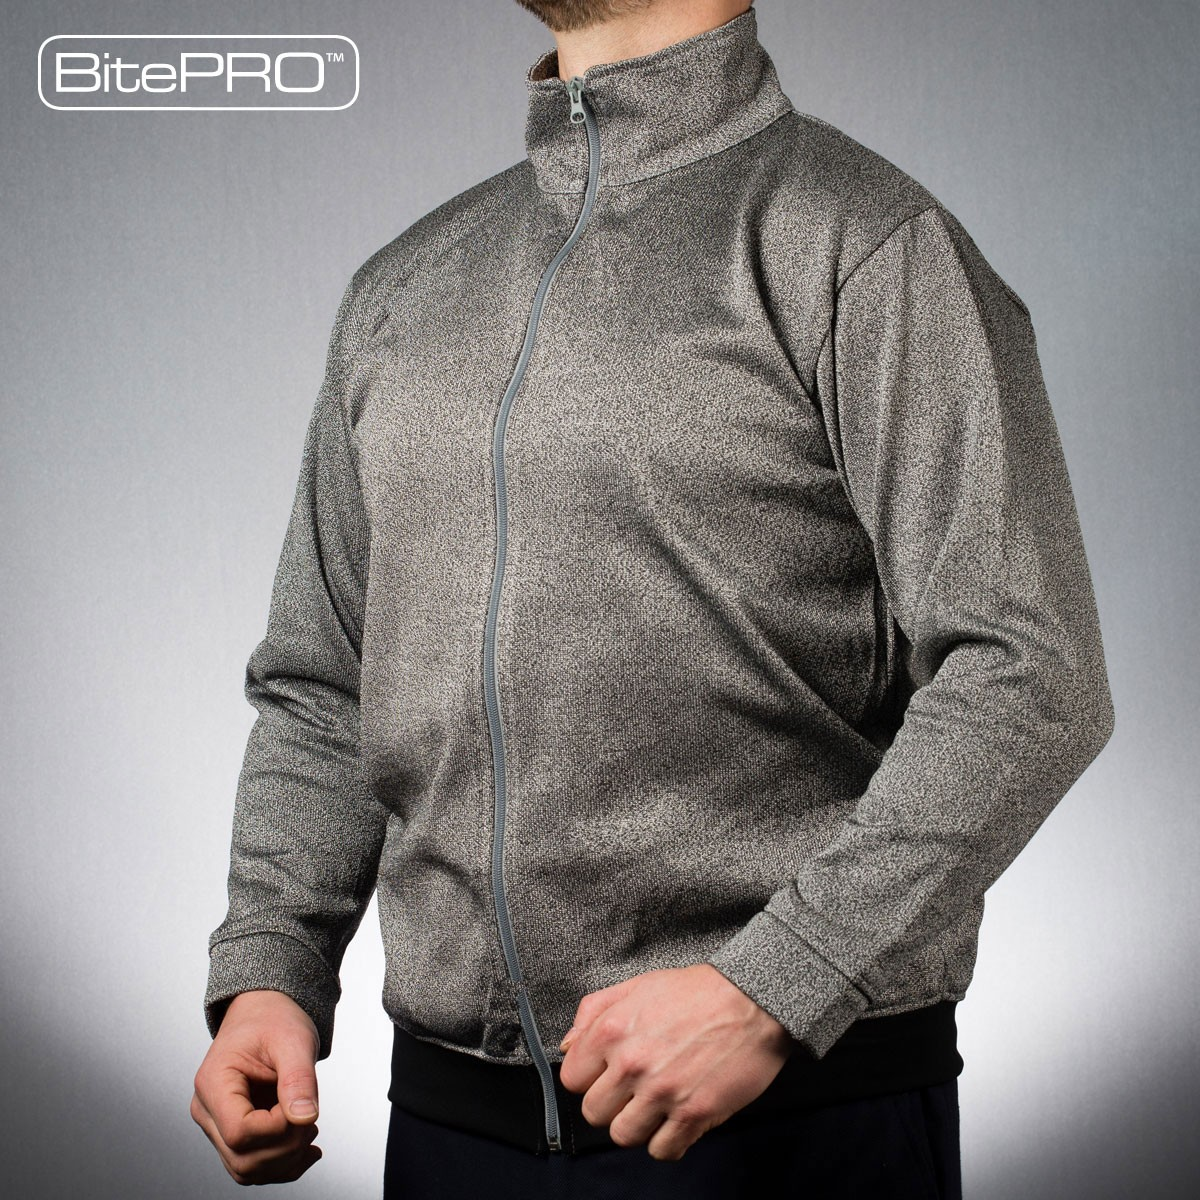 Bite Pro turtleneck jacket